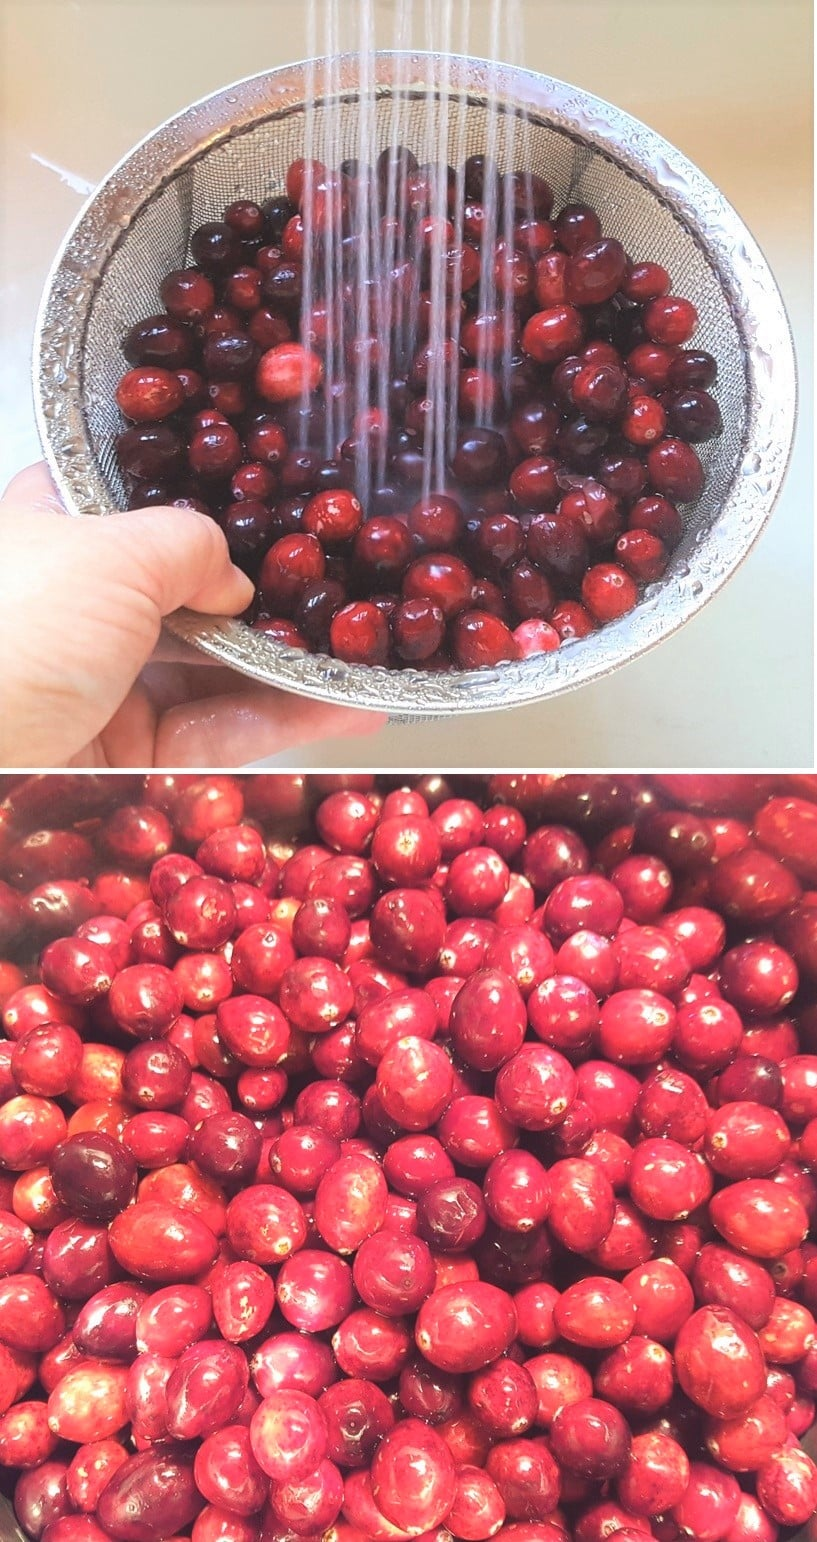 Wash and Pick Over Cranberries